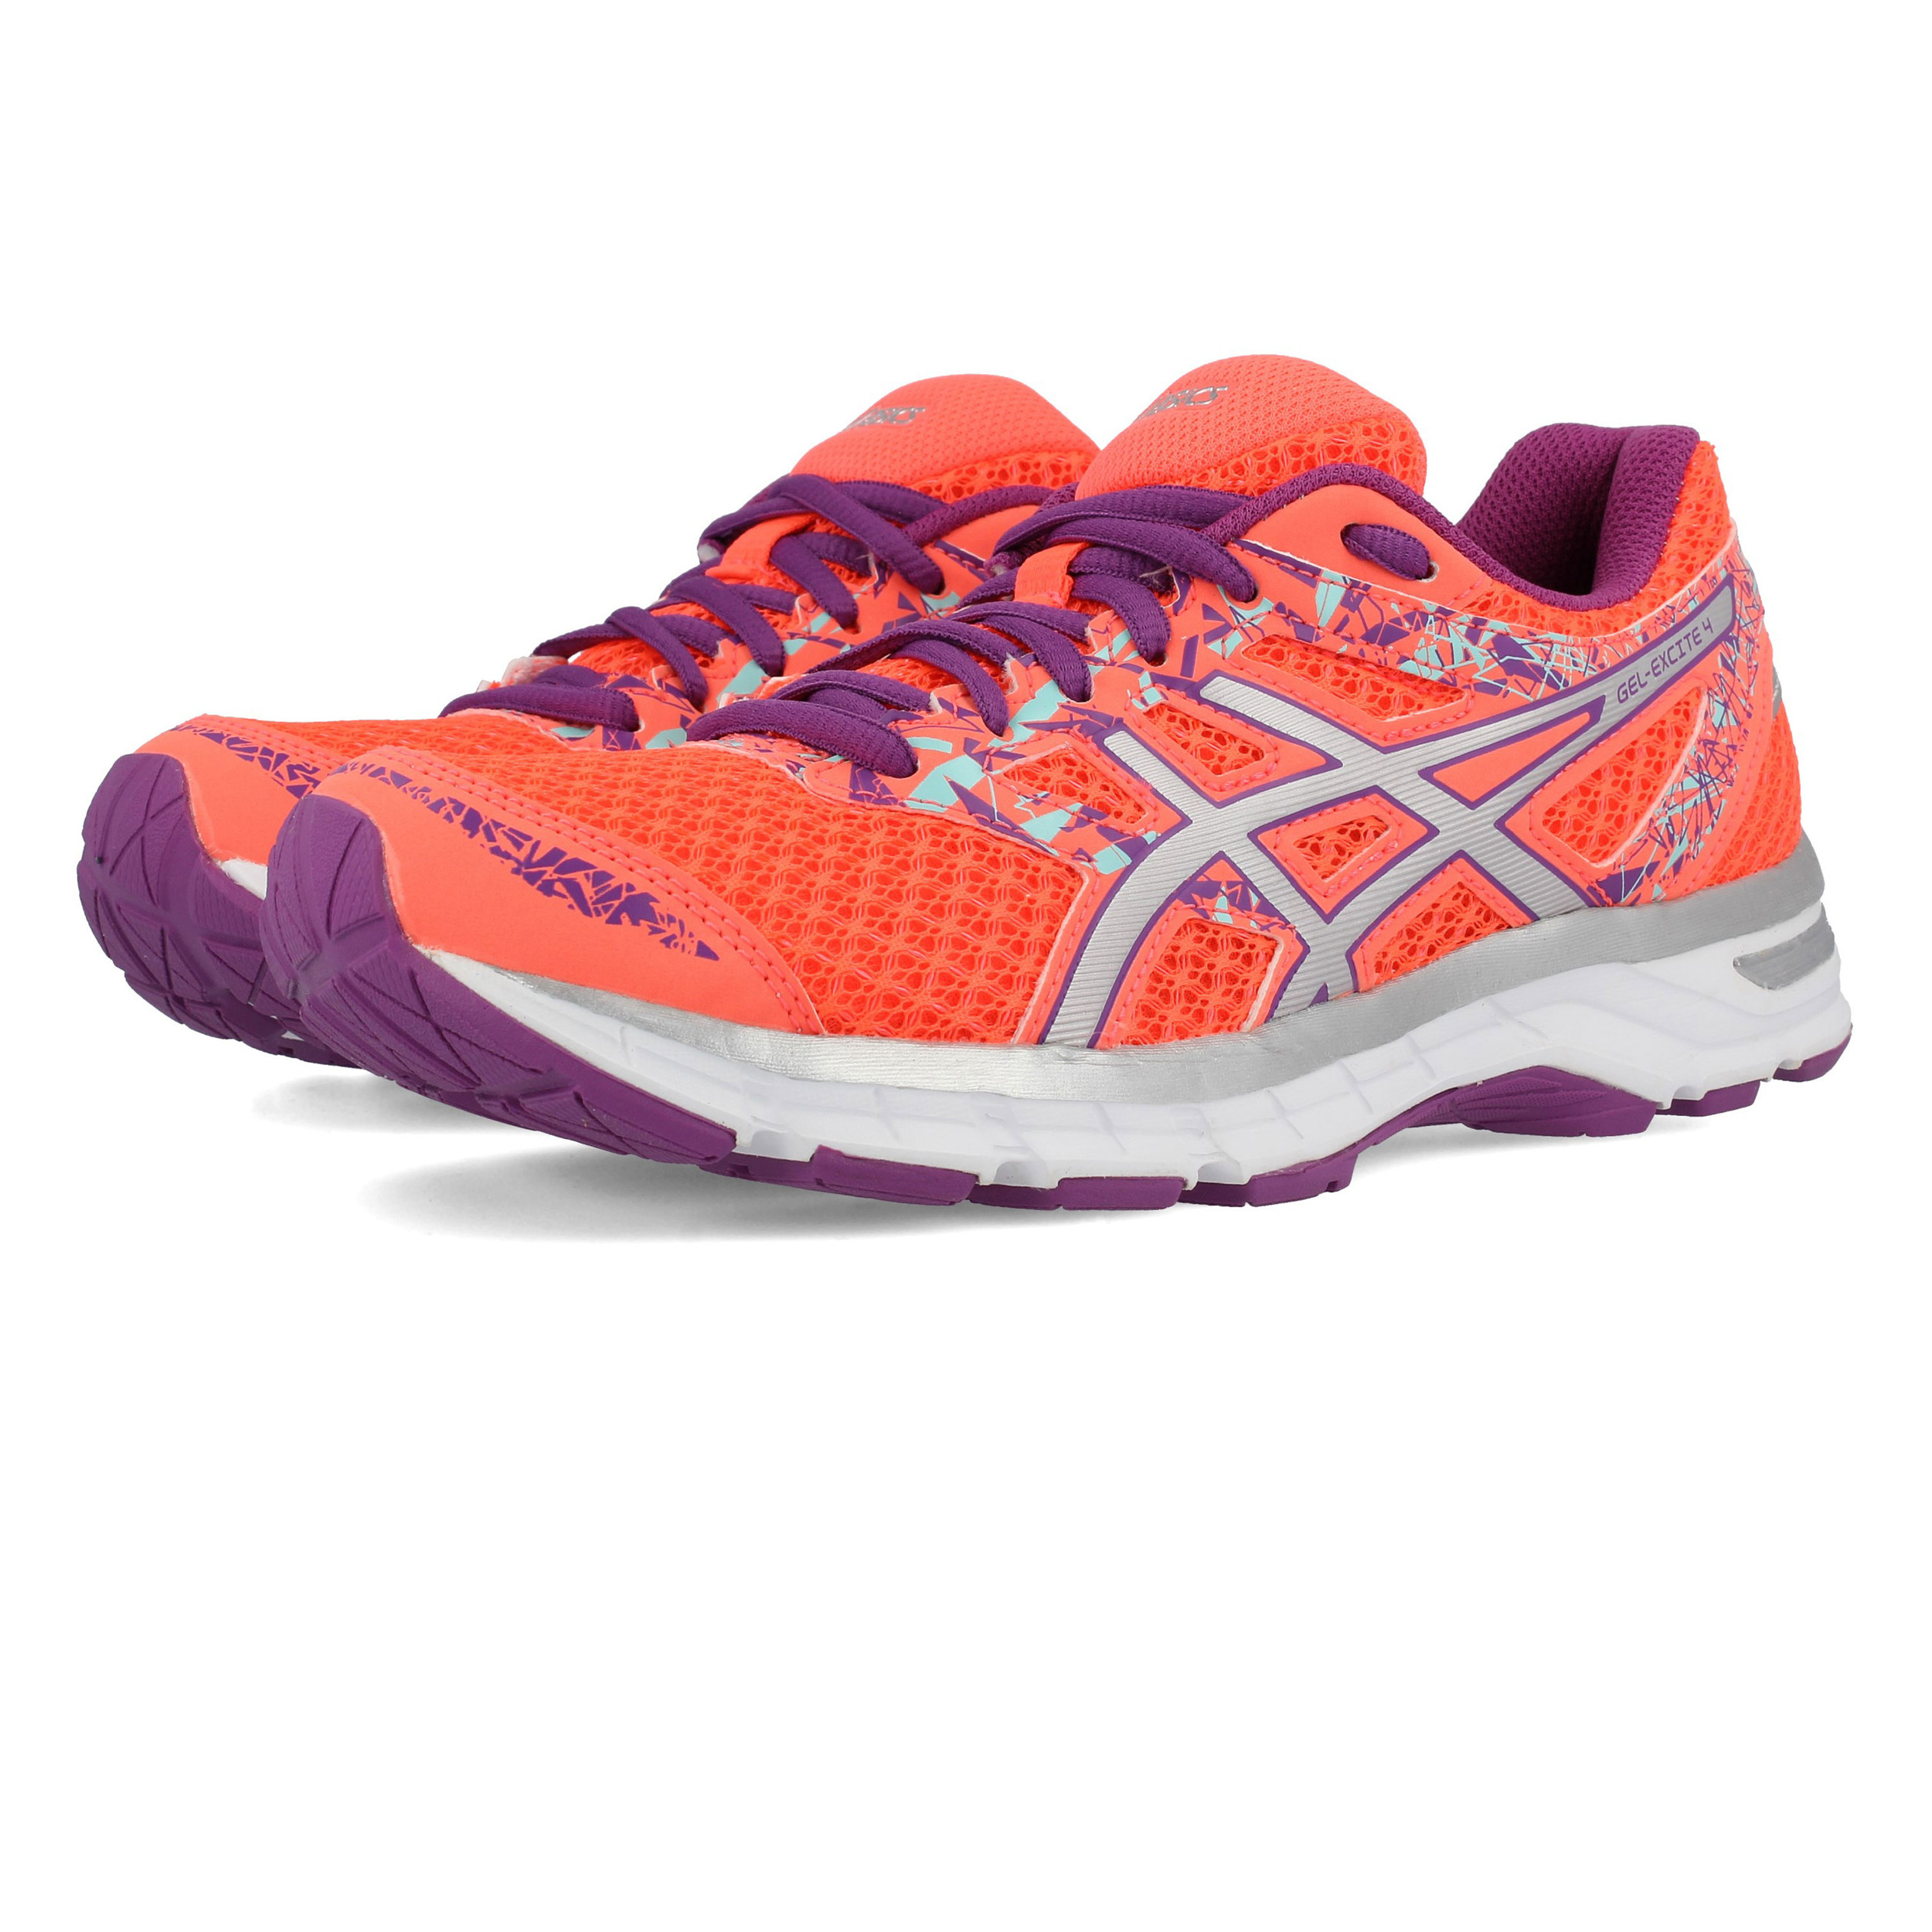 ASICS GEL Excite 4 Orange Woman Shoes 7  bacc9c7421af4